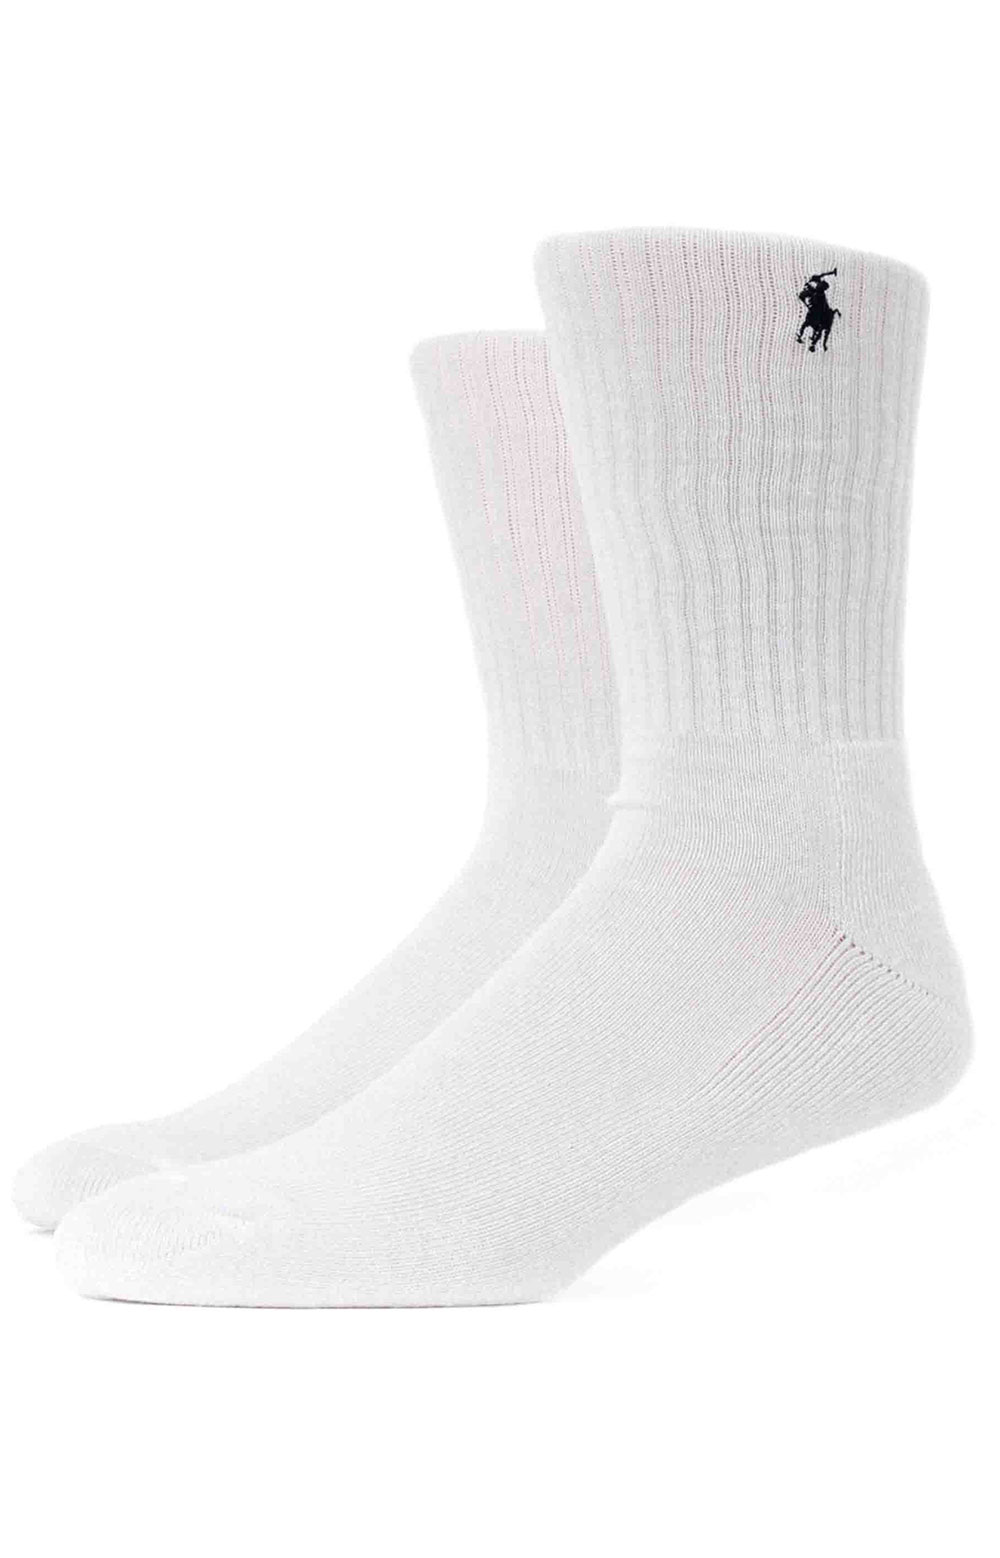 Cushioned Crew Socks 6 Pack - Grey Assorted  4